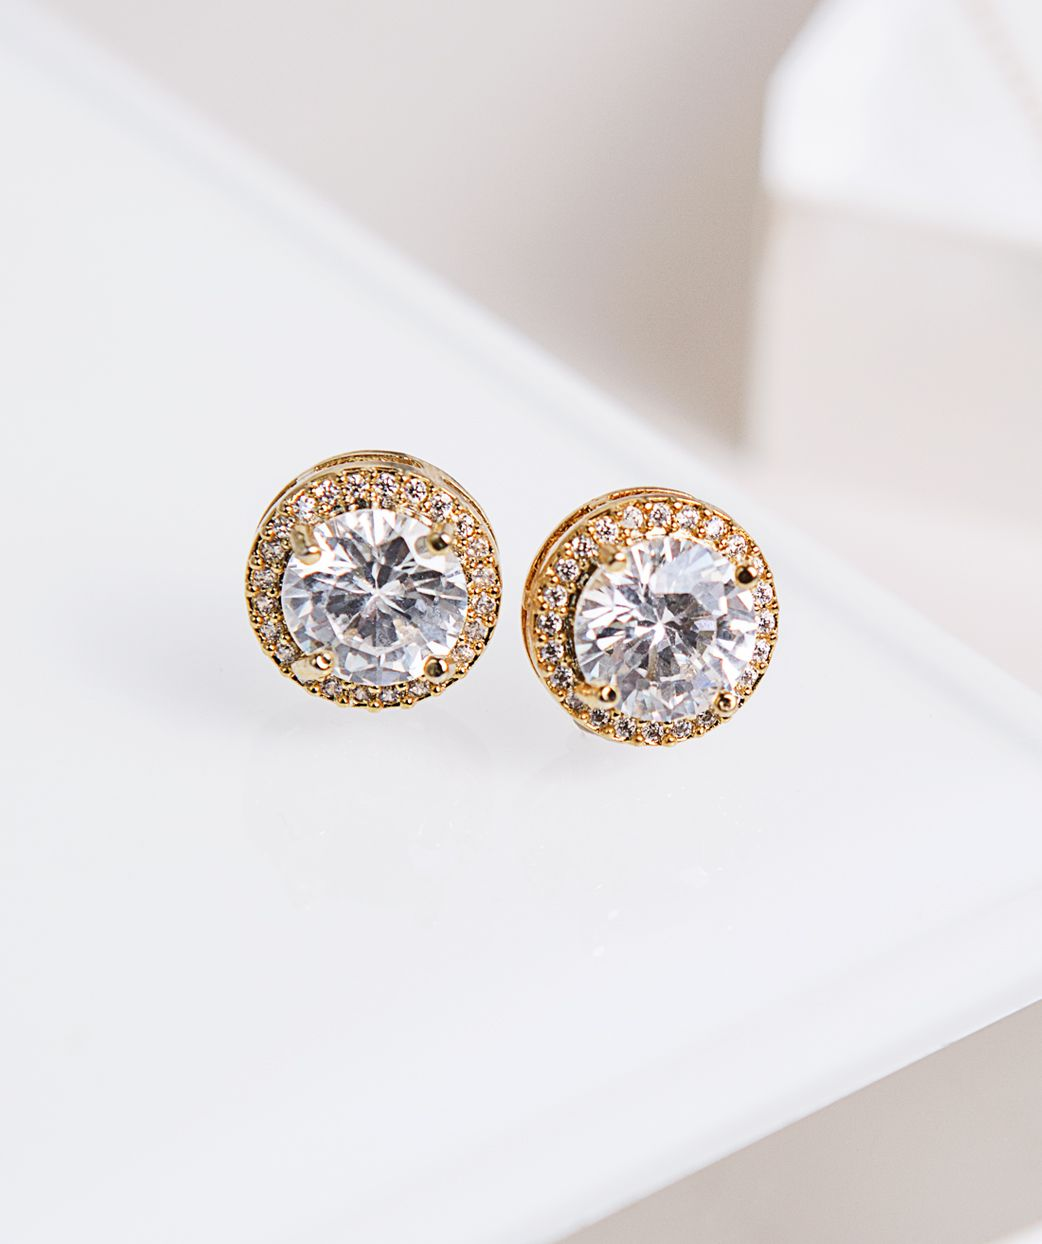 Wedding Stud Halo Earrings Minimalist Bridal Studs Minimal Cubic Zirconia  Crystal White Gold Wedding Earrings Crystal